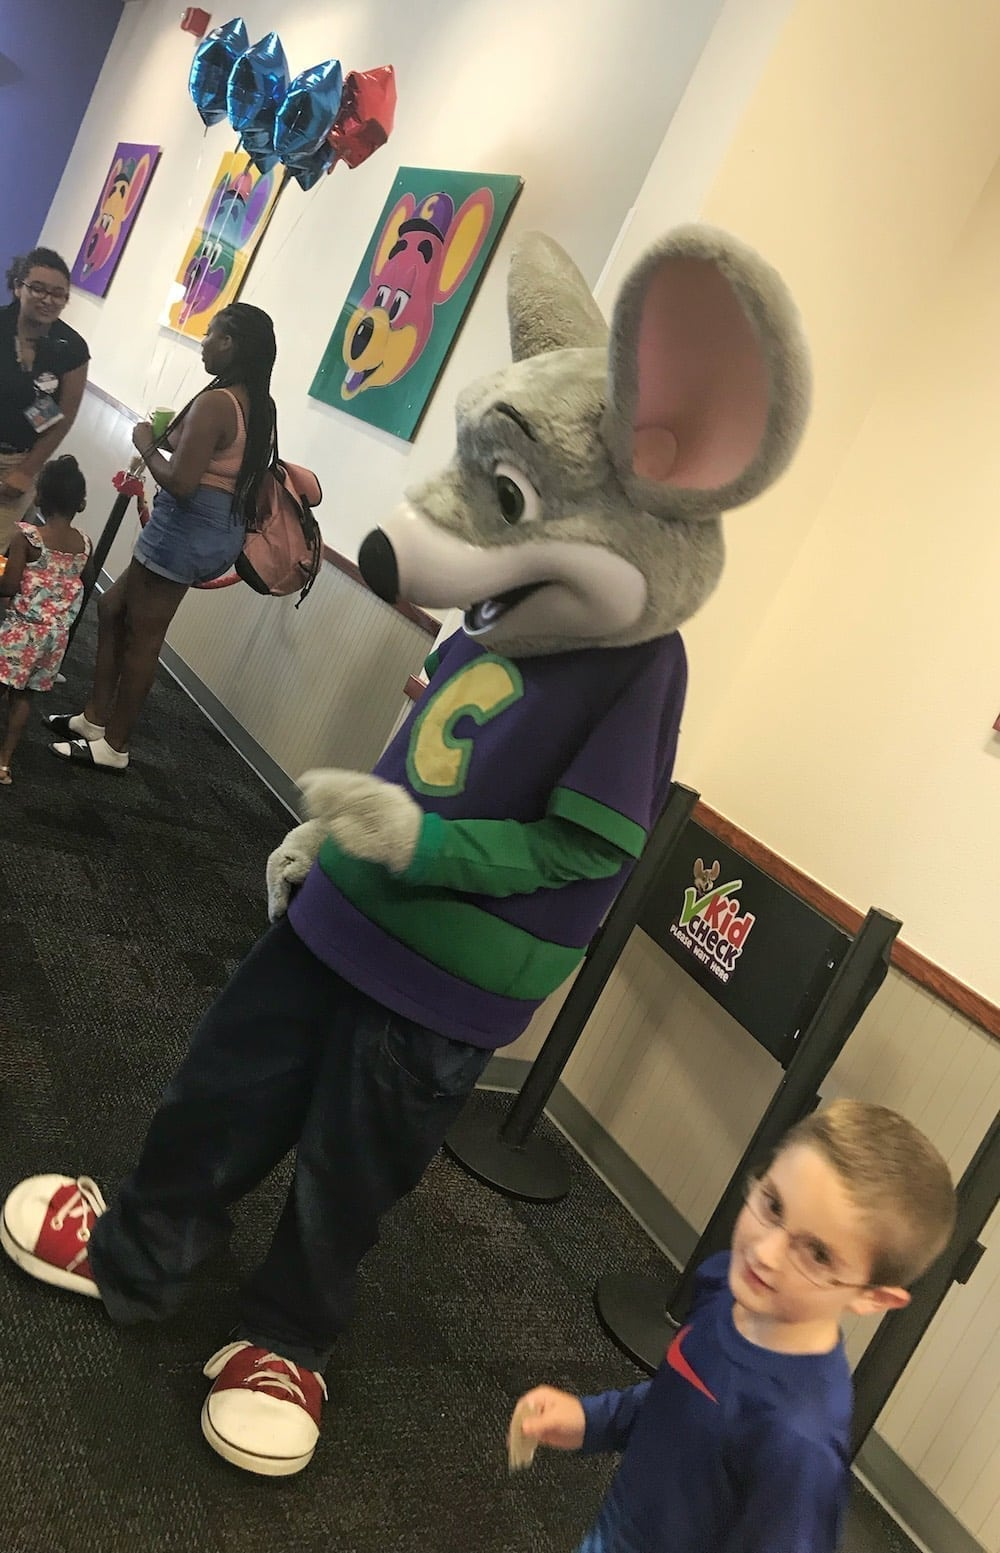 Chuck E Cheese's in person with my son